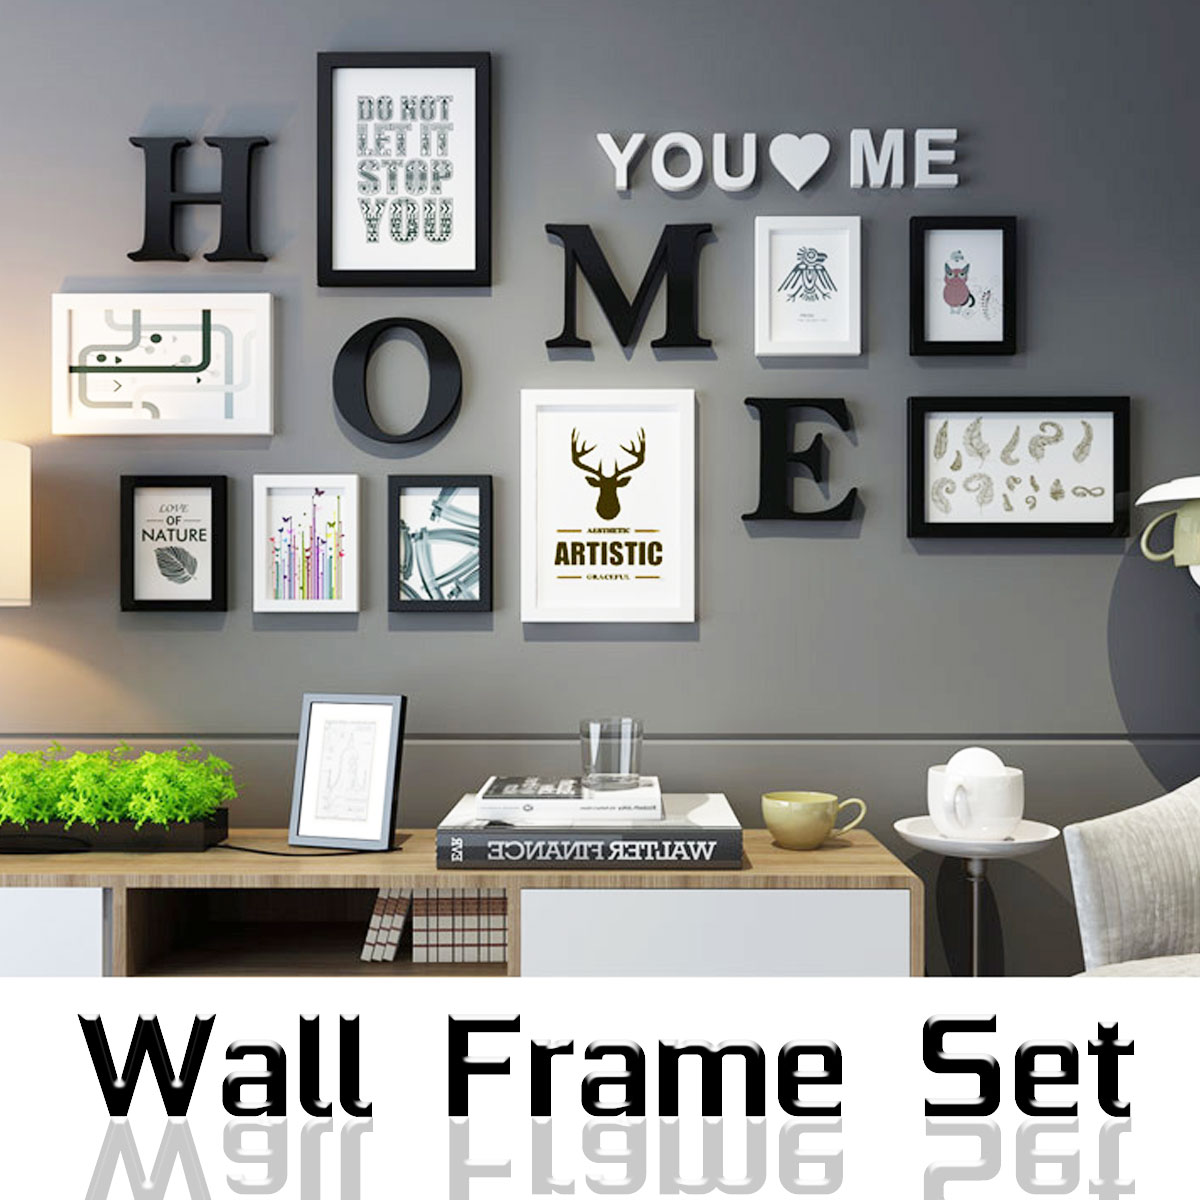 9 pcs/set Europe Style Black White Vintage Photo Frame Wall Family Wooden Picture Frame Sets Round Picture Frames For Paintings9 pcs/set Europe Style Black White Vintage Photo Frame Wall Family Wooden Picture Frame Sets Round Picture Frames For Paintings